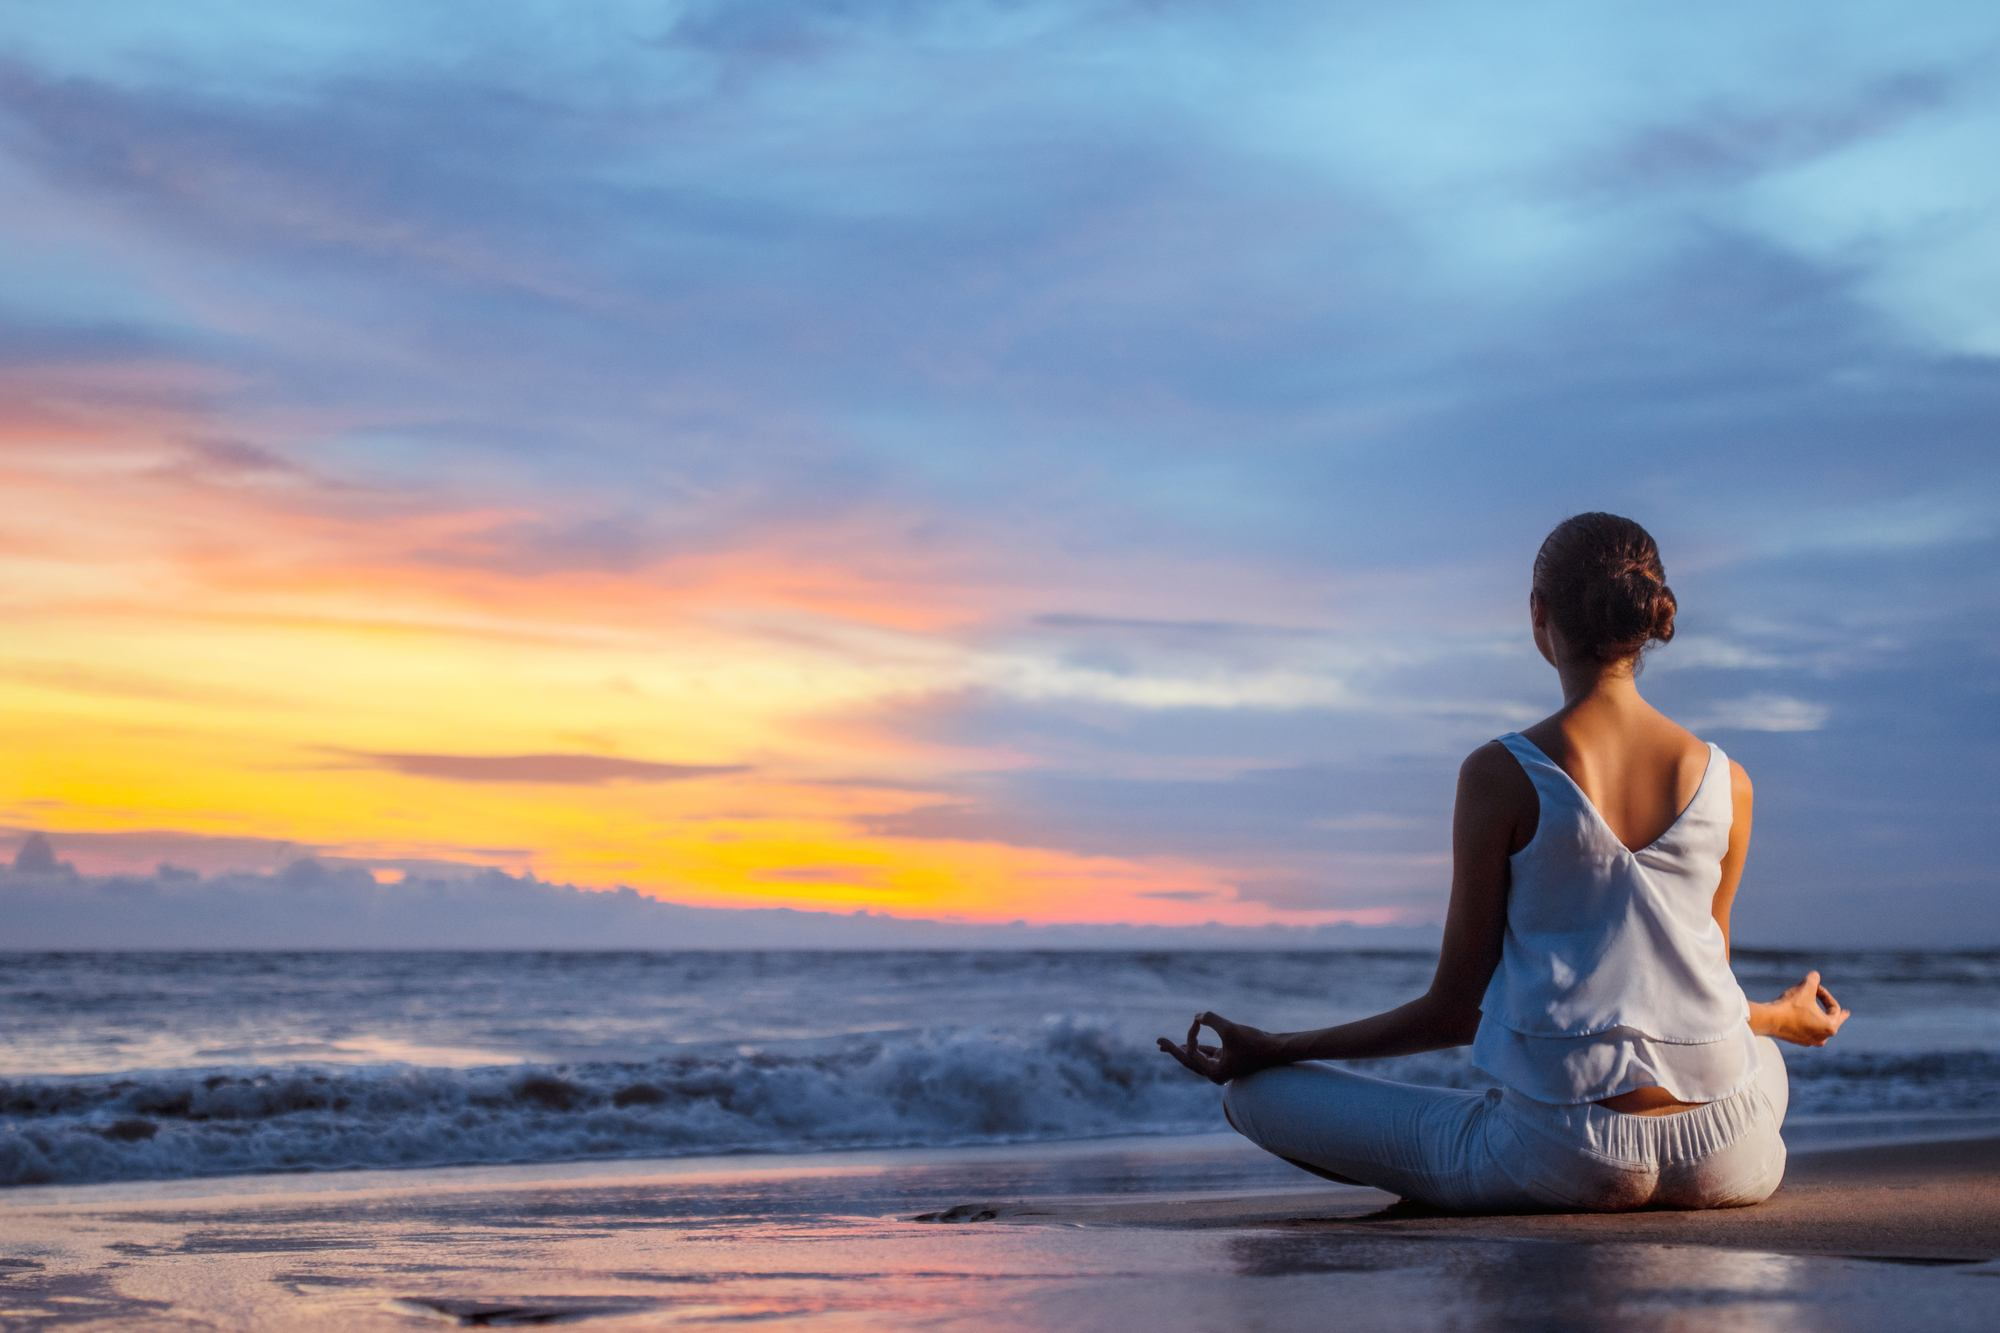 Young girl meditating in lotus pose on the beach